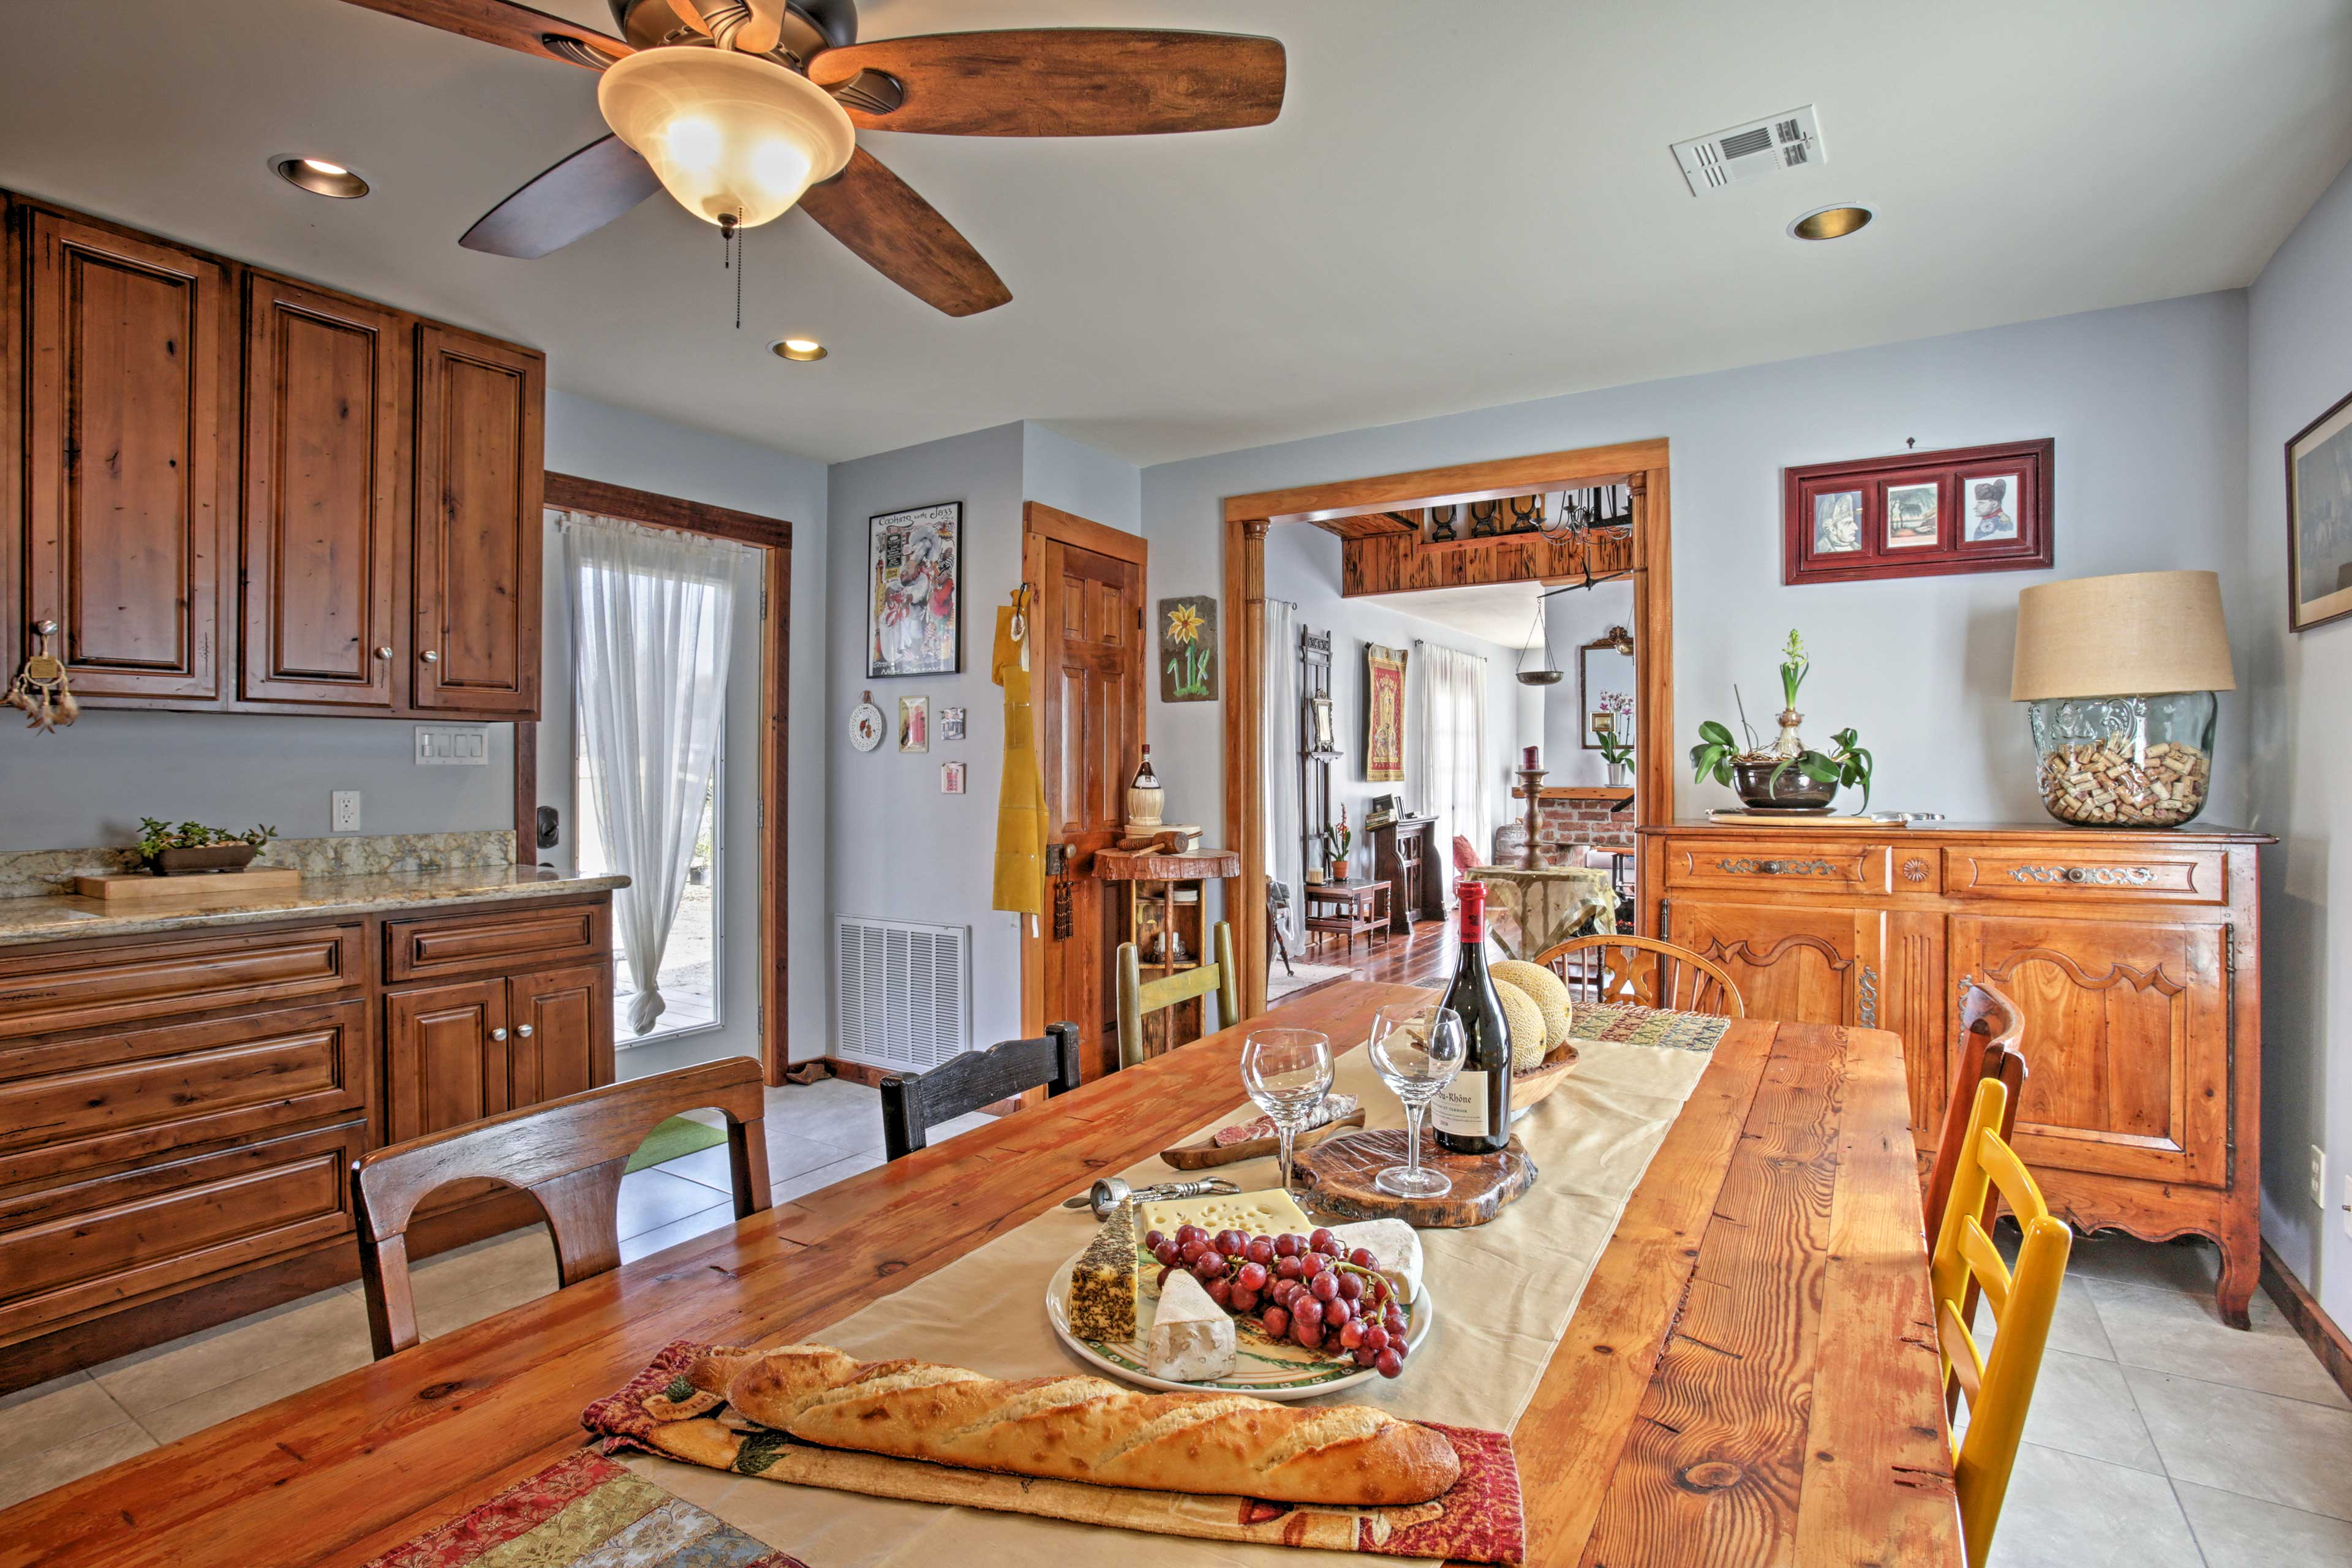 This historic home has been recently updated.